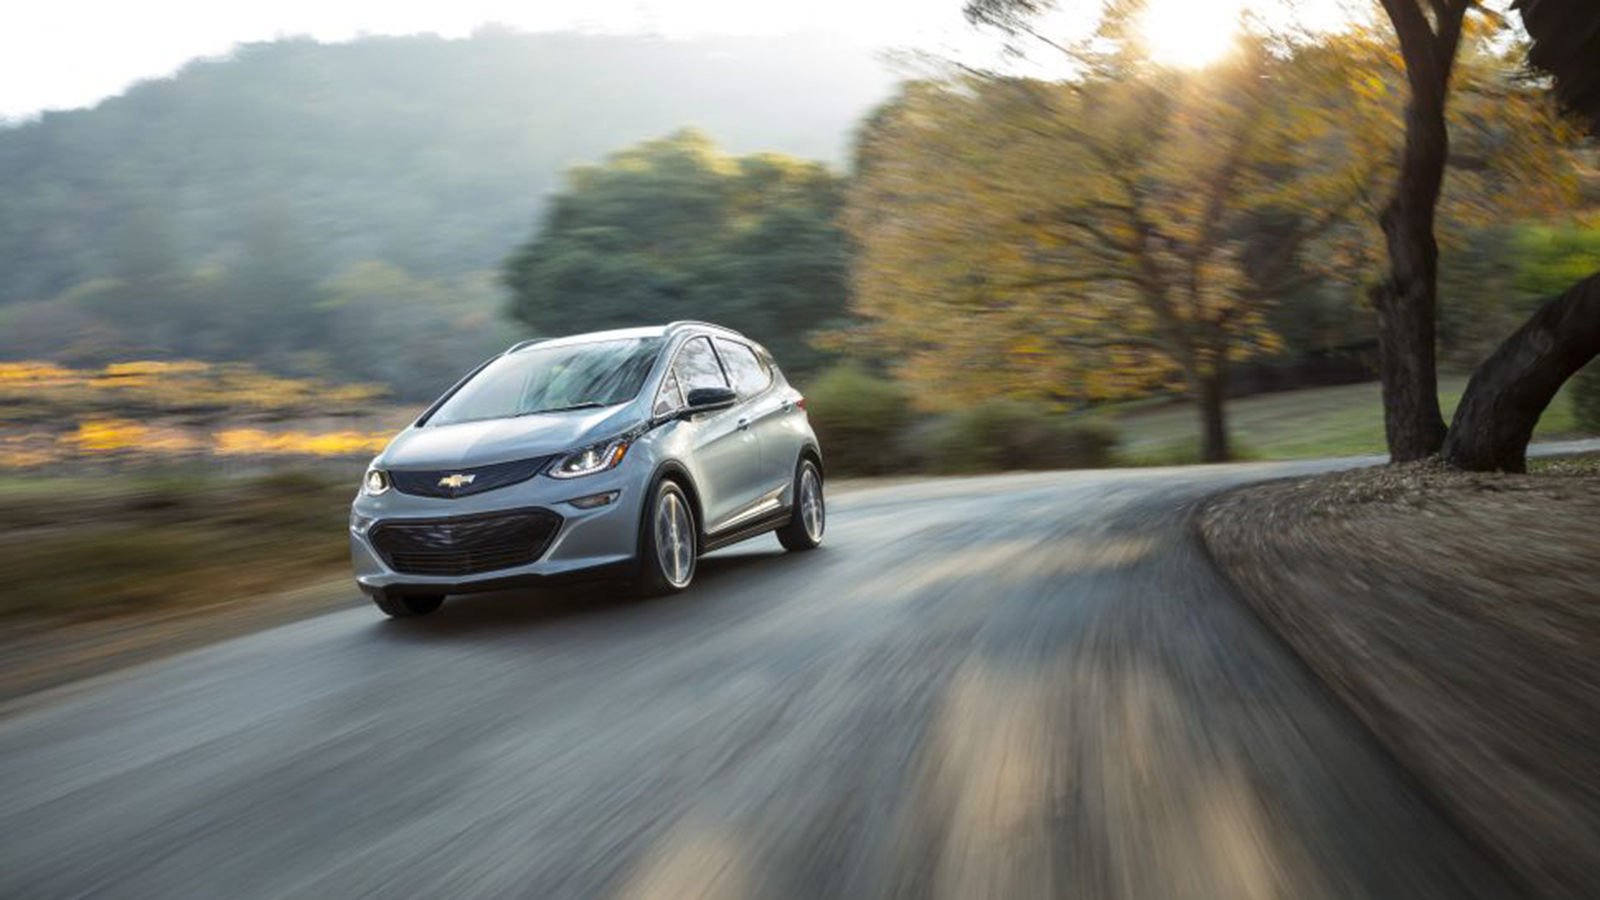 EVs explained: everything you need to know about electric